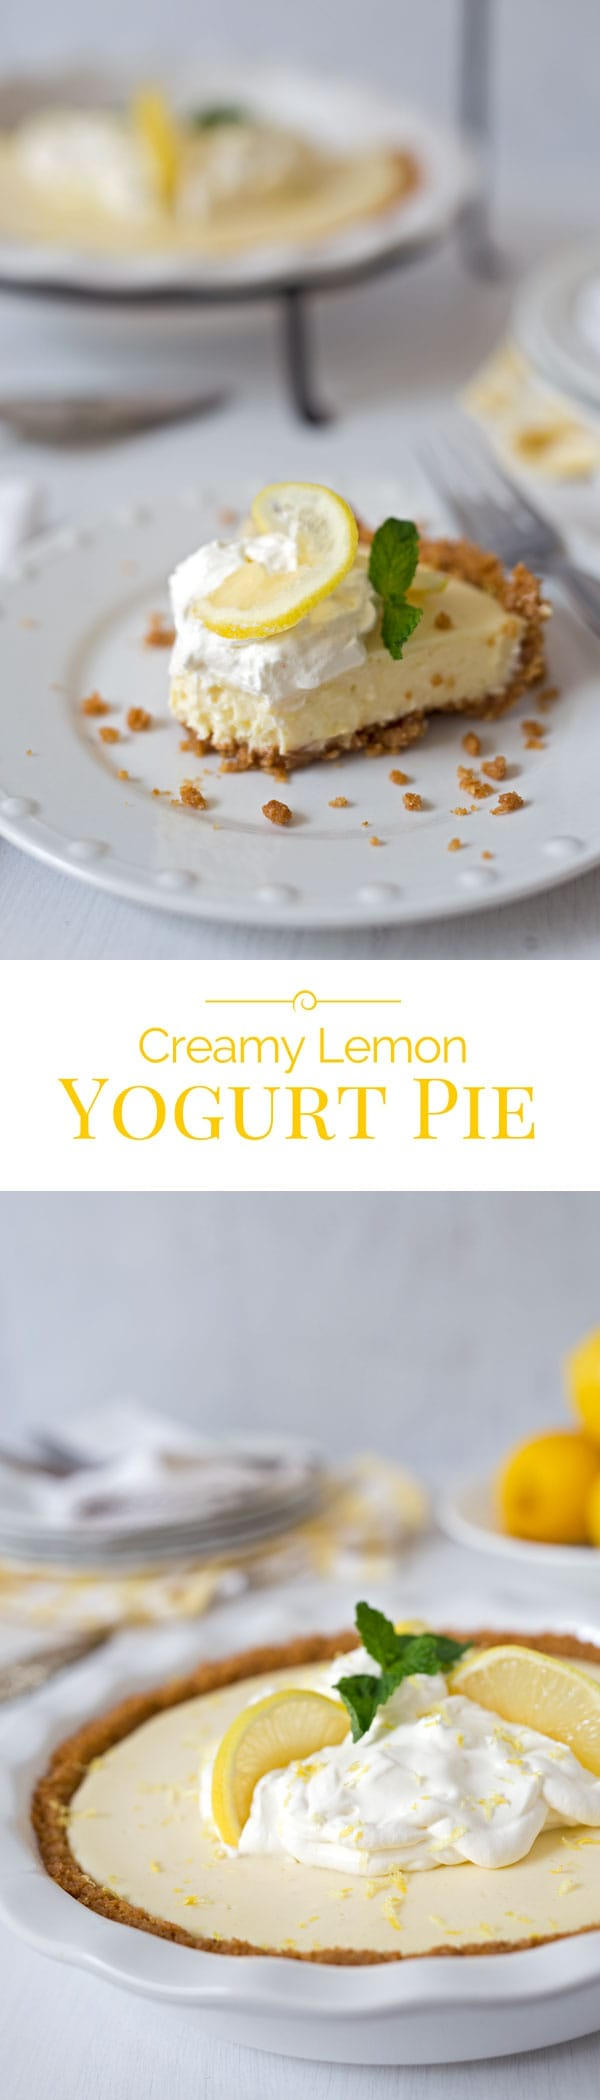 A Creamy Lemon Yogurt Pie in a crisp graham cracker crust. The easy-to-make lemon filling gets it's creamy texture and a little extra tang from the addition of Greek yogurt.